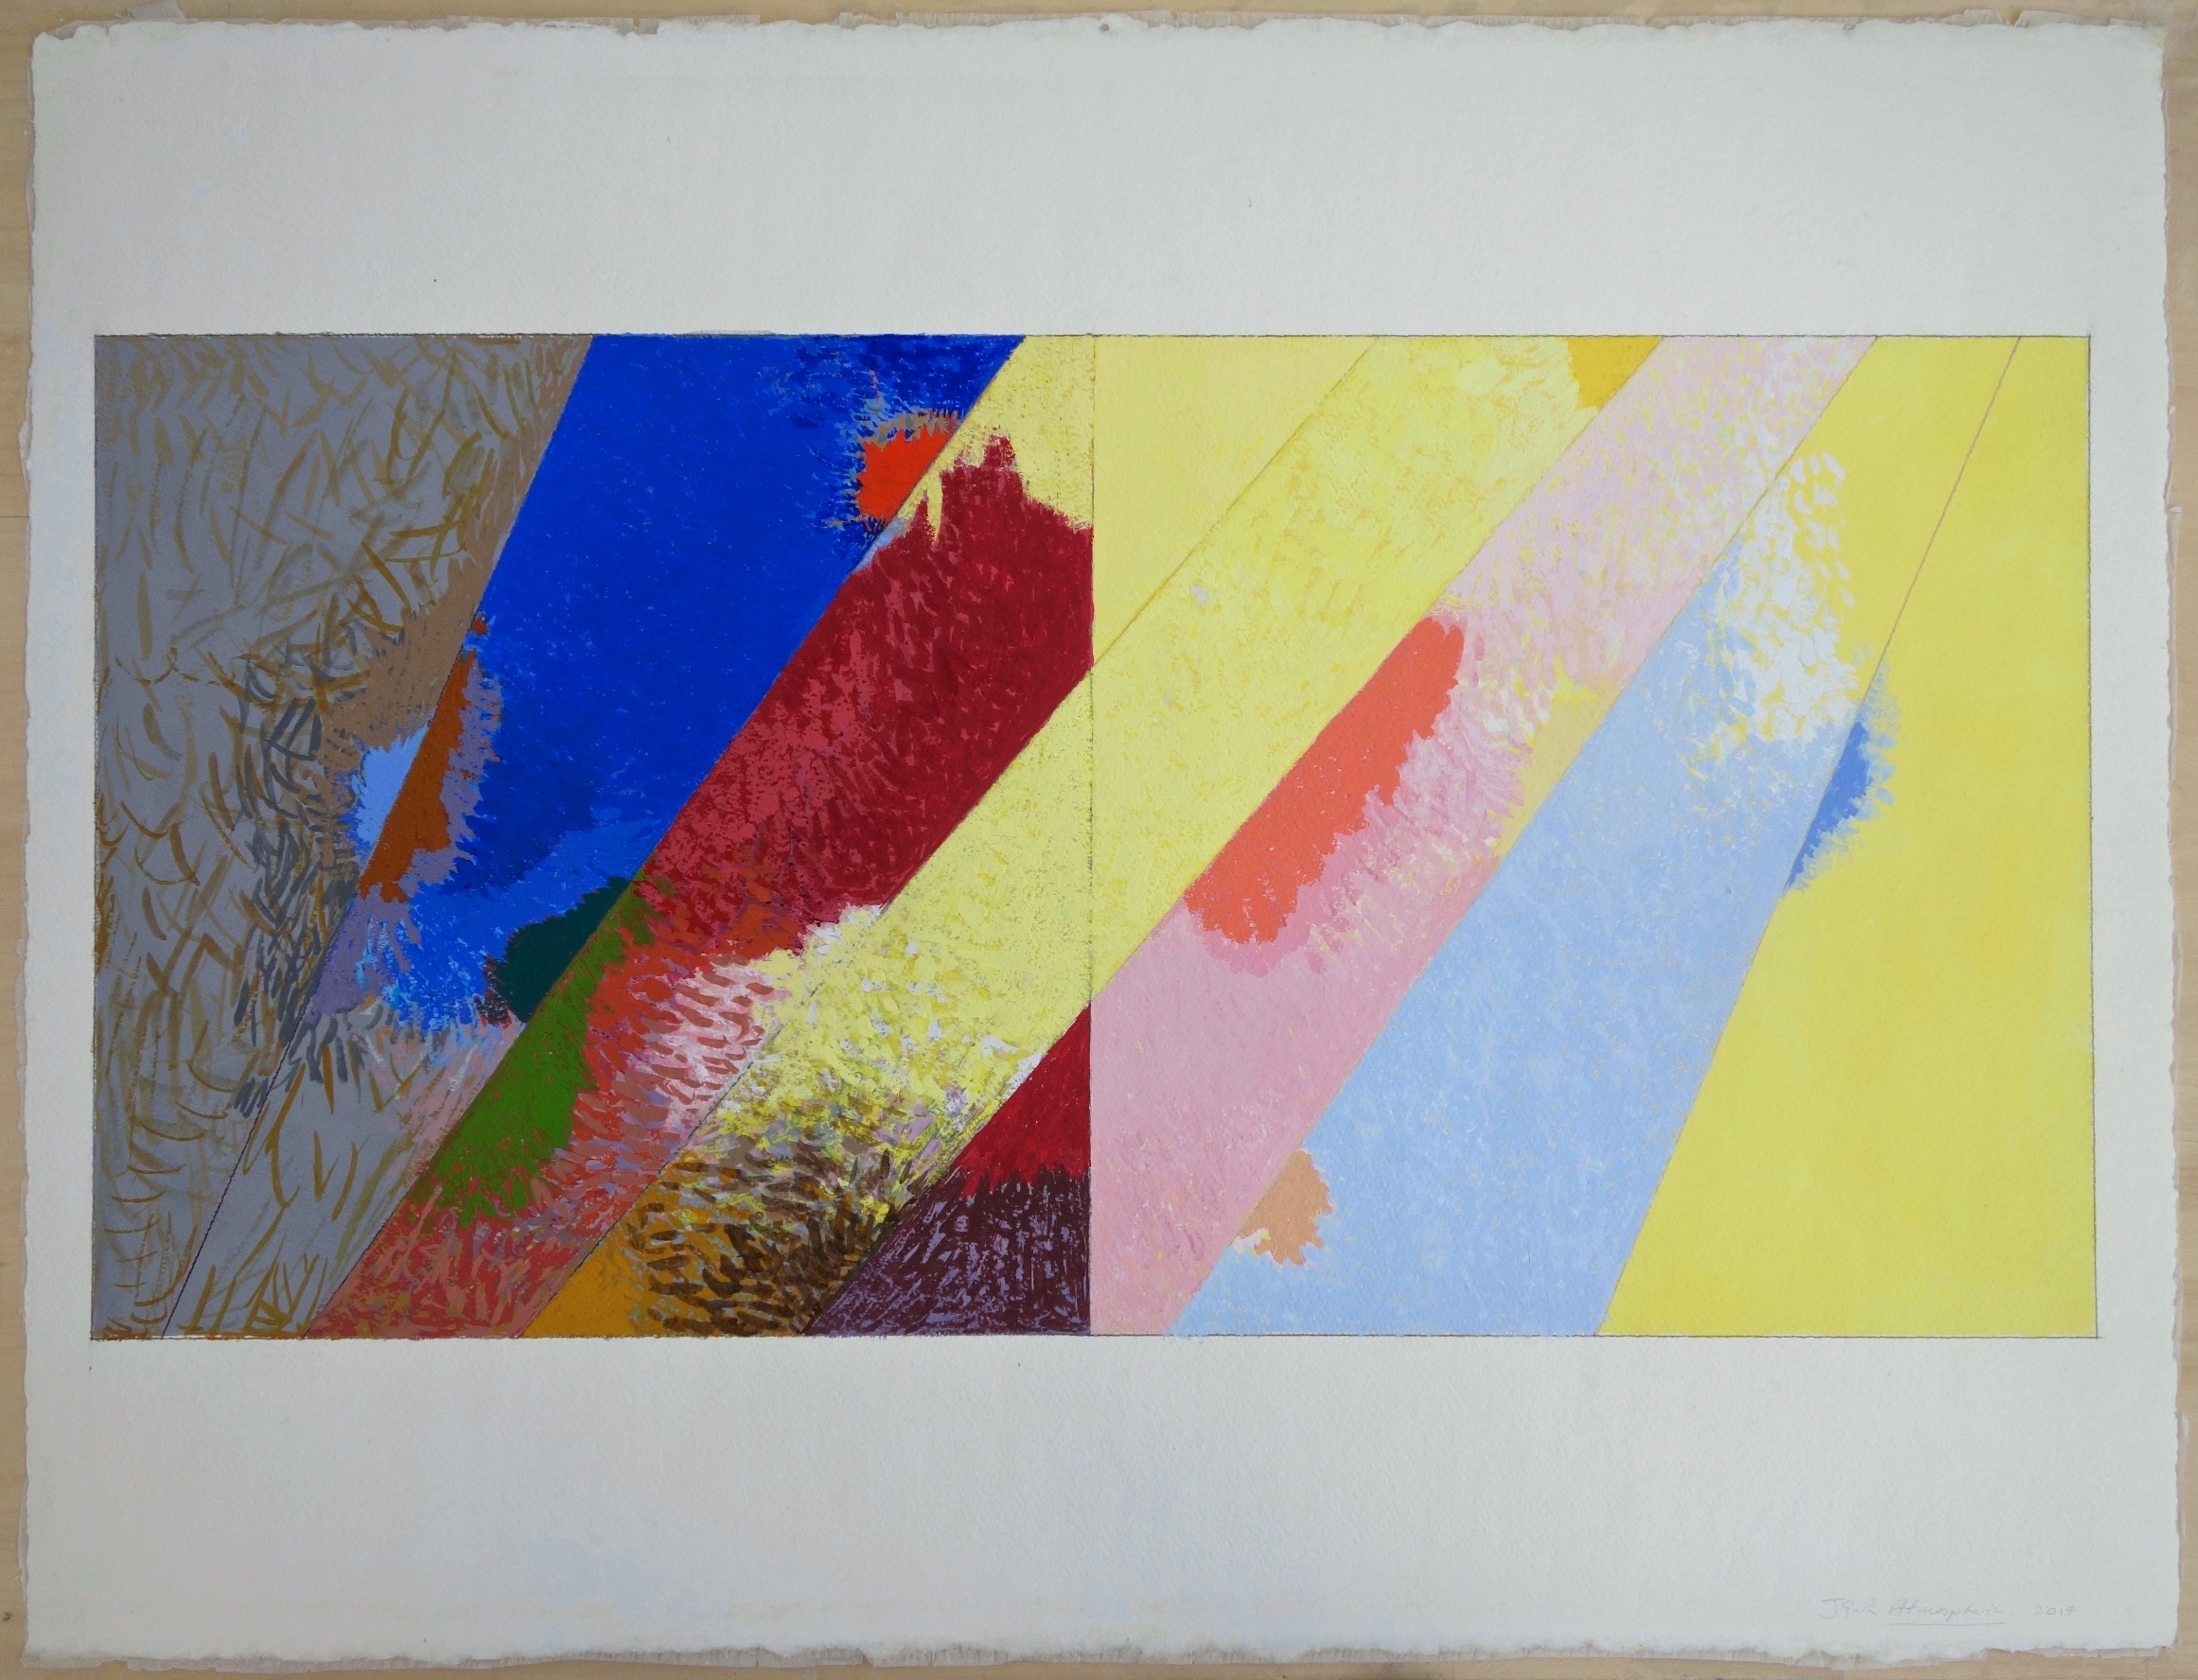 Atmospheric (2014), Gouache on Paper. paper 22.5x30; image 14x28 in.